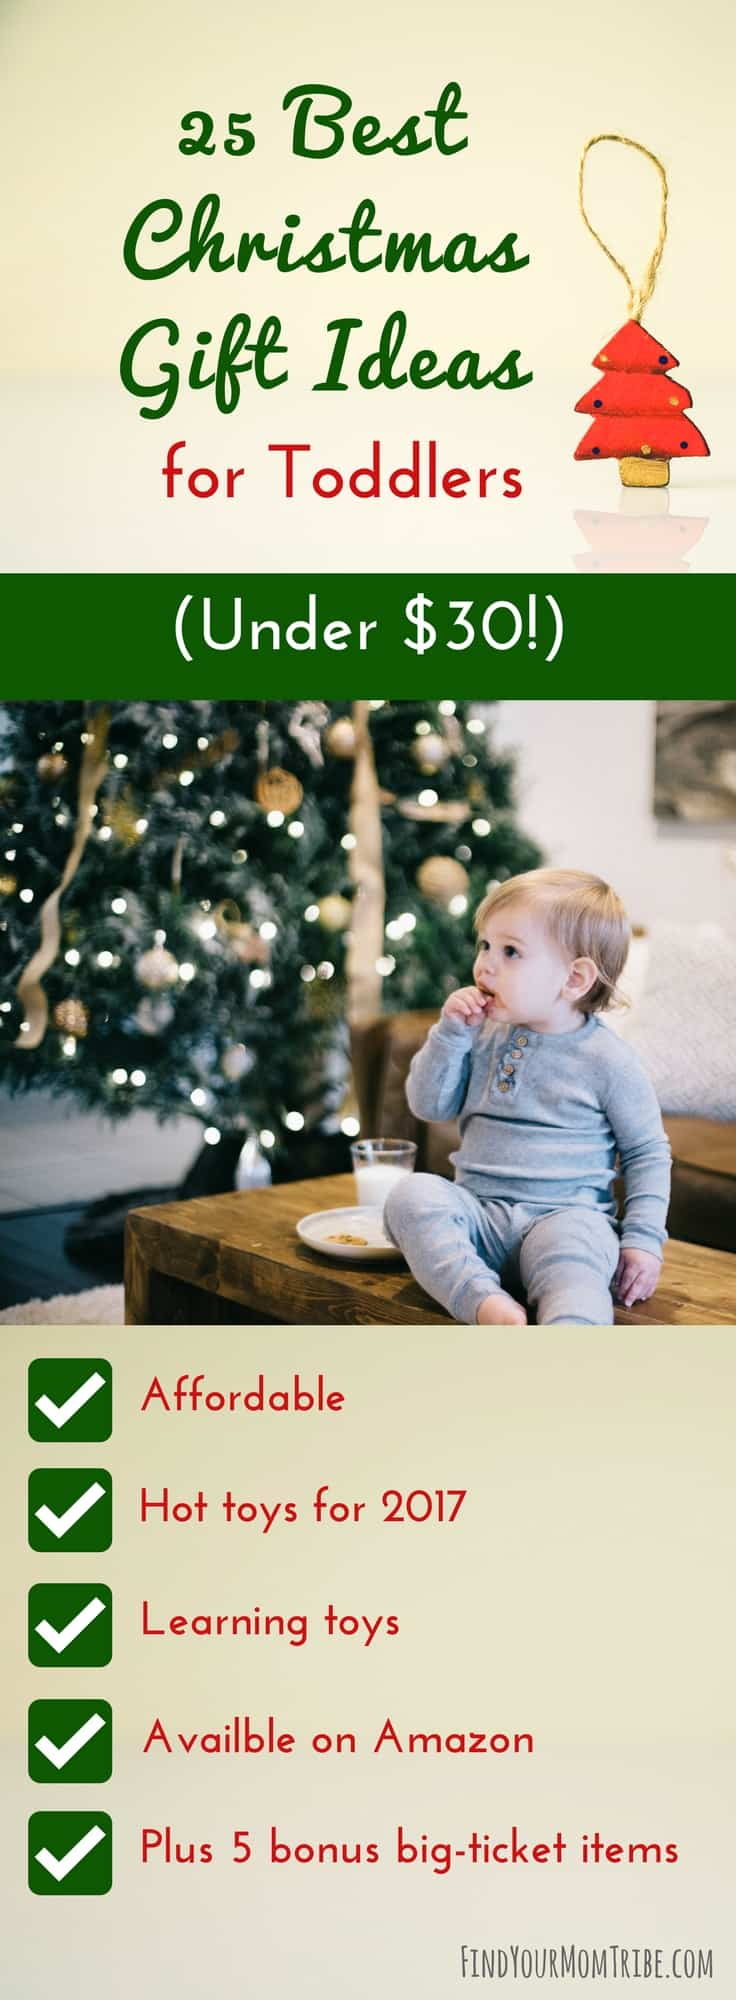 Not only is this a great list, but it's also hilarious! 25 Best Christmas Gift Ideas for Toddlers (Under $30!) #Christmasgiftideas #Giftideasfortoddlers #giftguide #toddlergiftguide #Giftsfor18montholds #Giftsfor1yearolds #Giftsfor2yearold #bestgifts2017 #giftsforkids #cheapgiftideas #Christmas